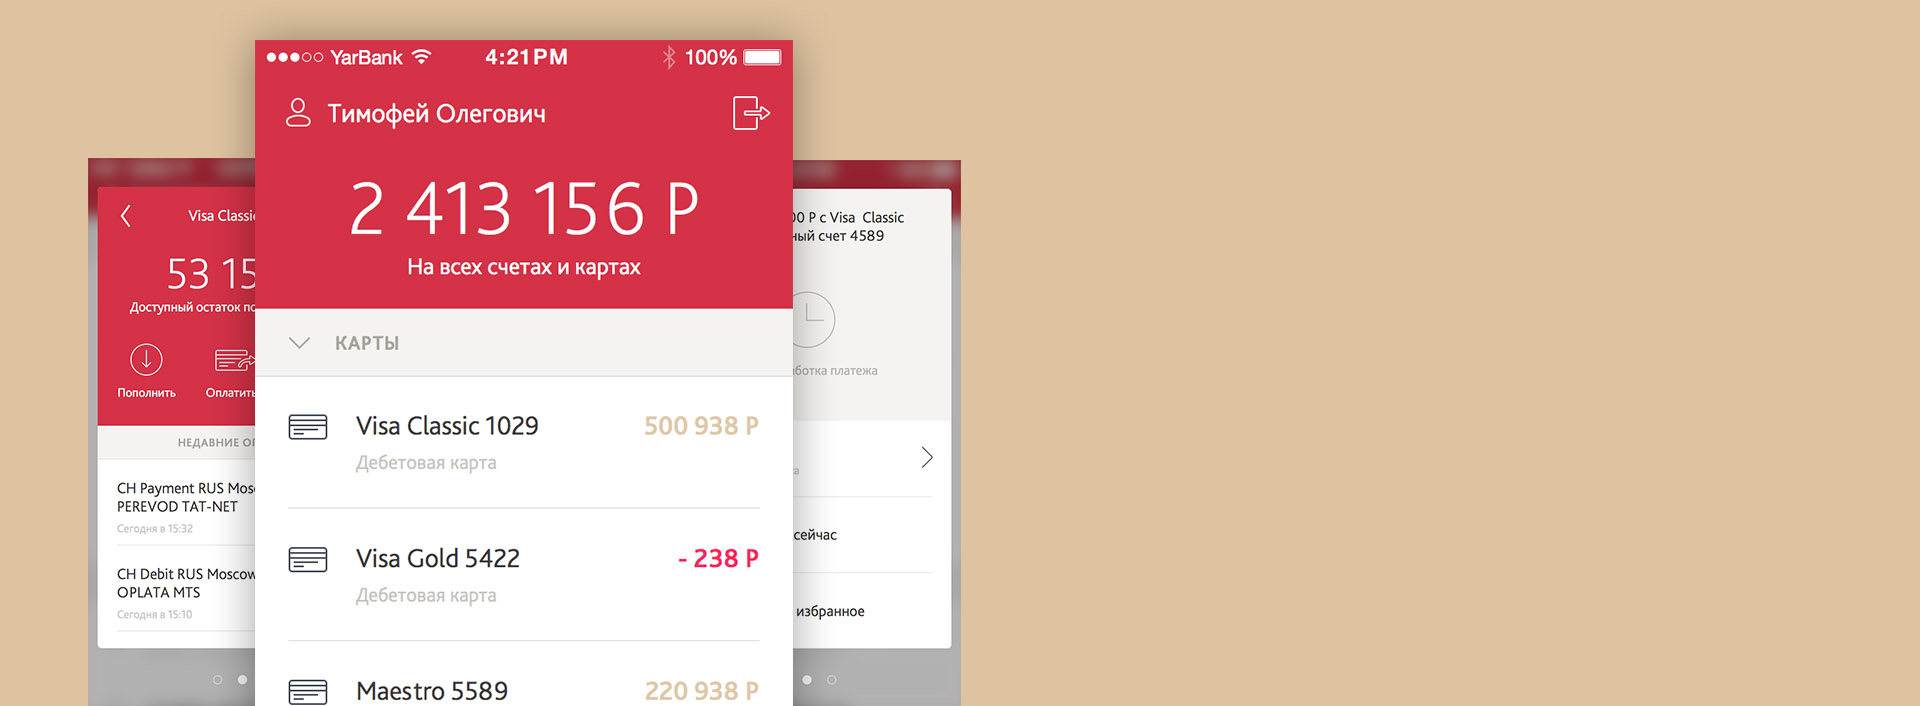 Rethinking Deposits UX In Unicredit Bank App